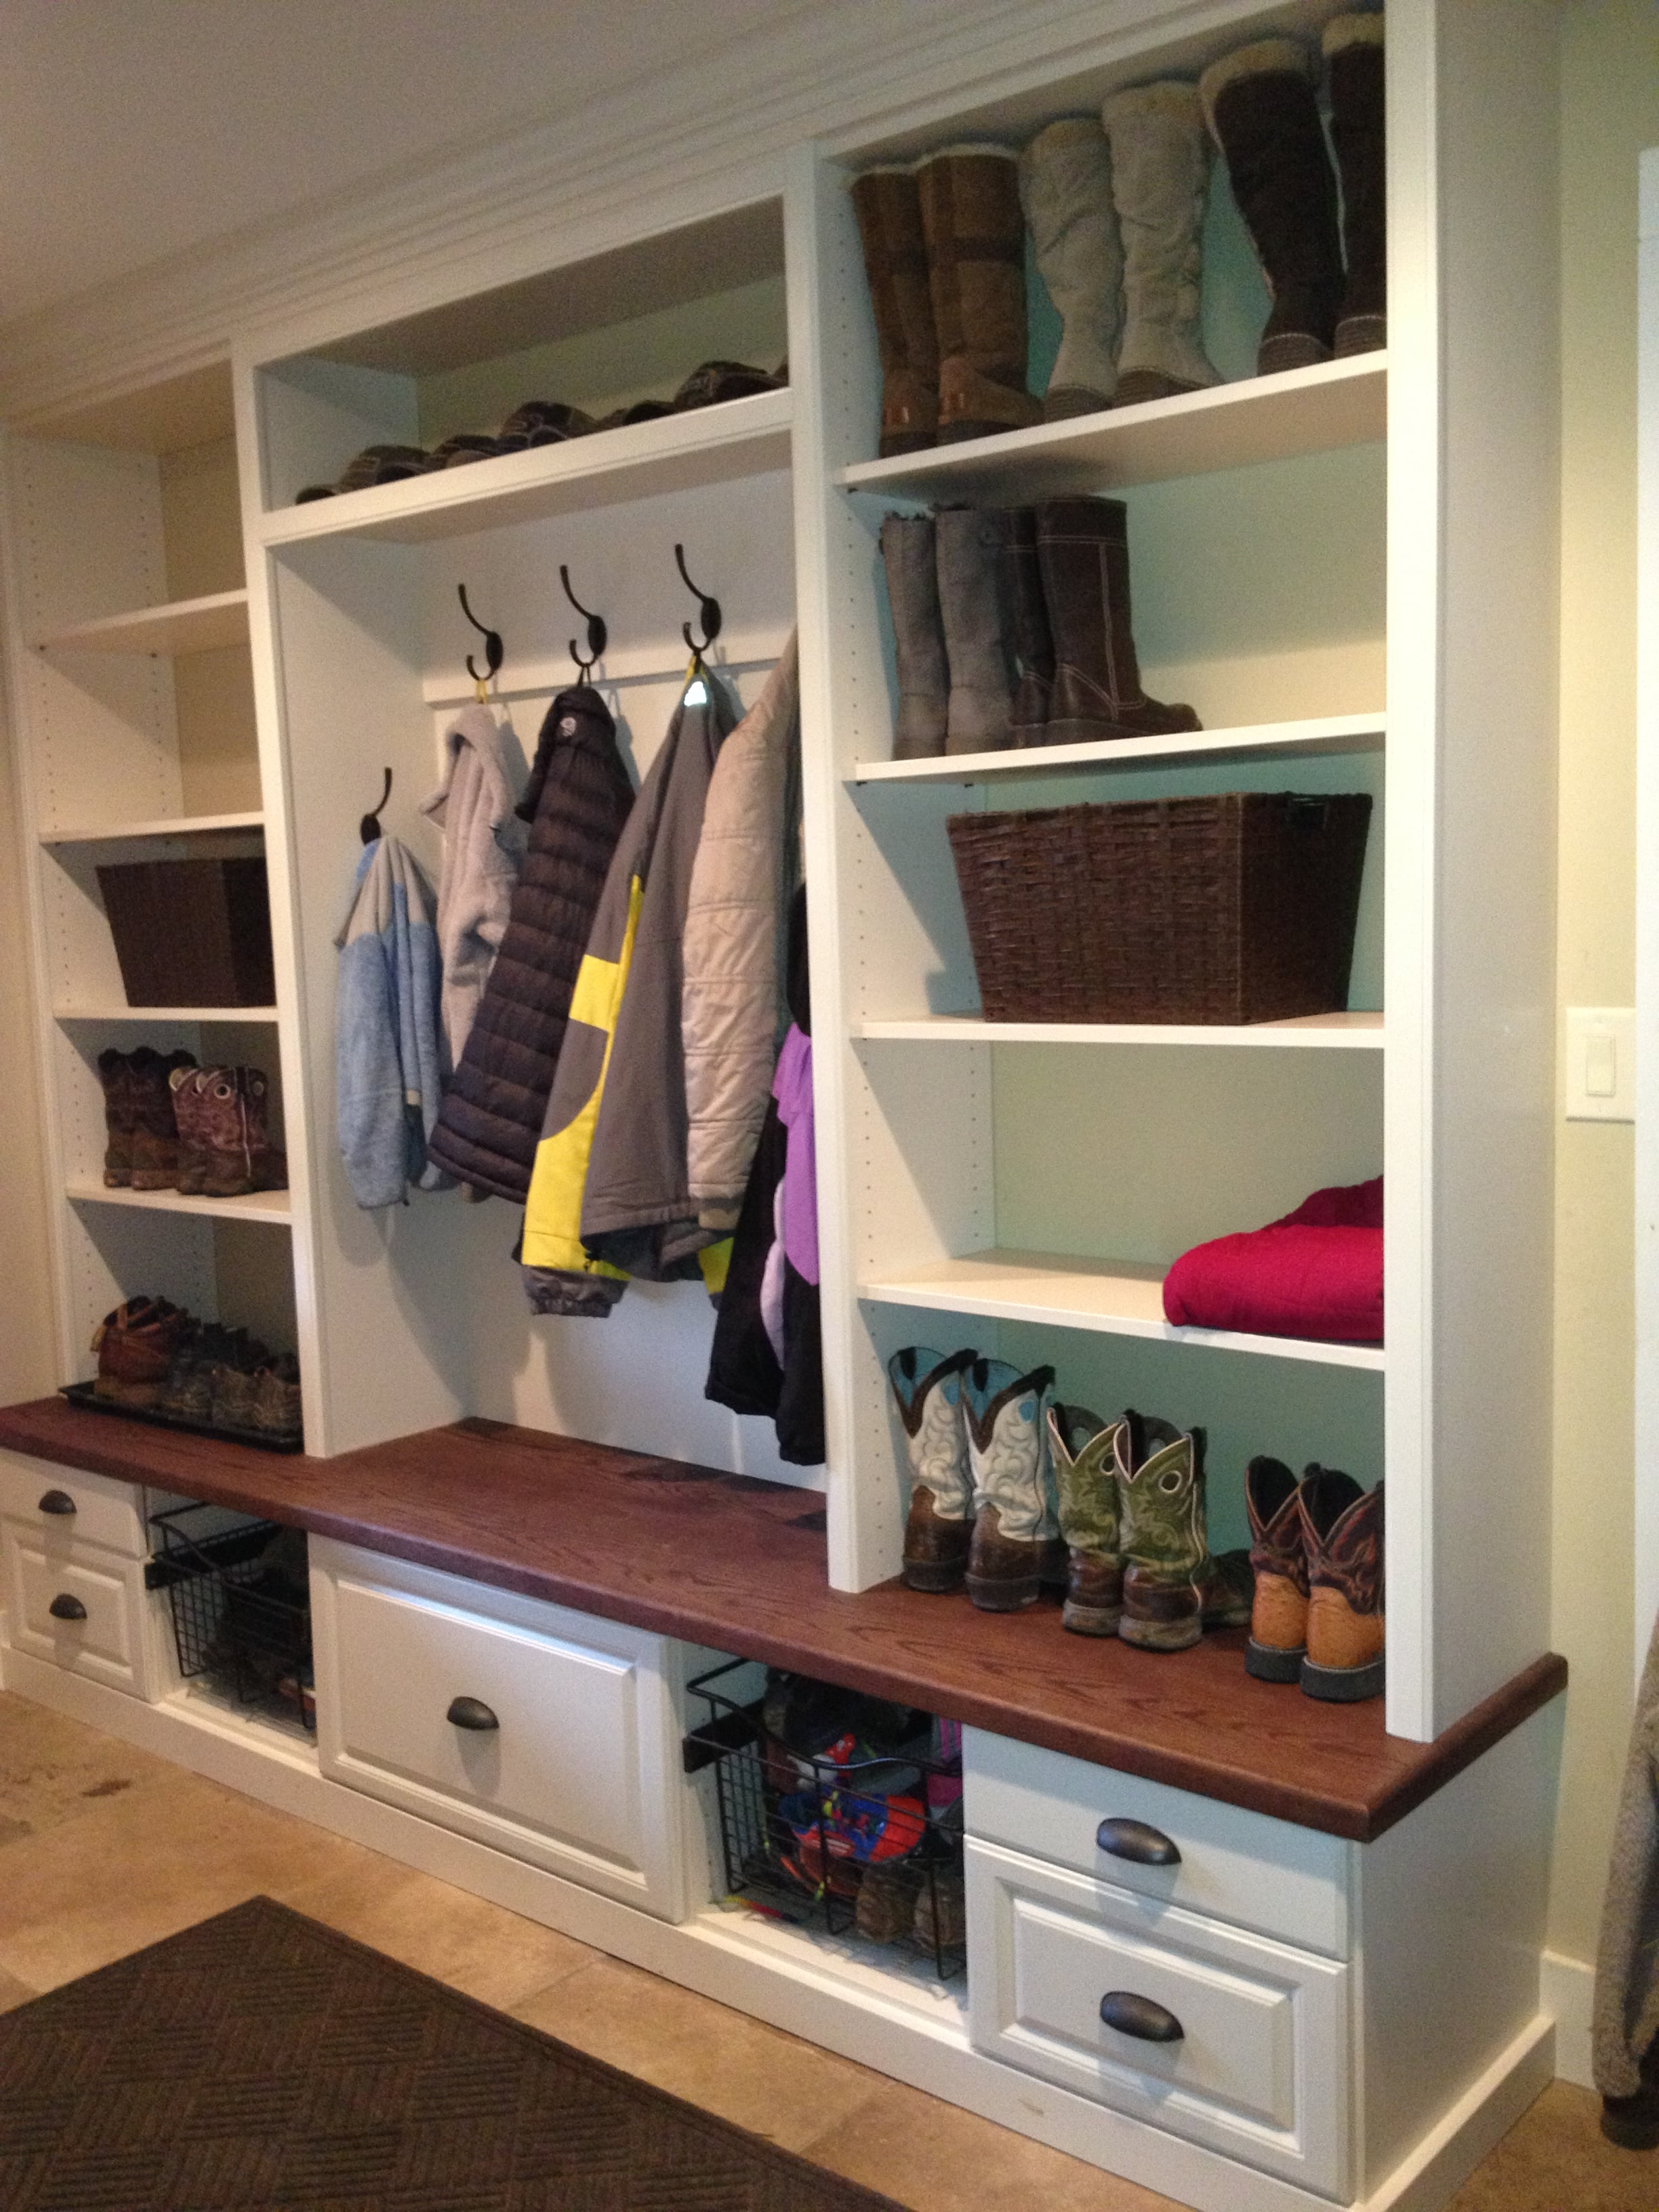 Mud Room with coats